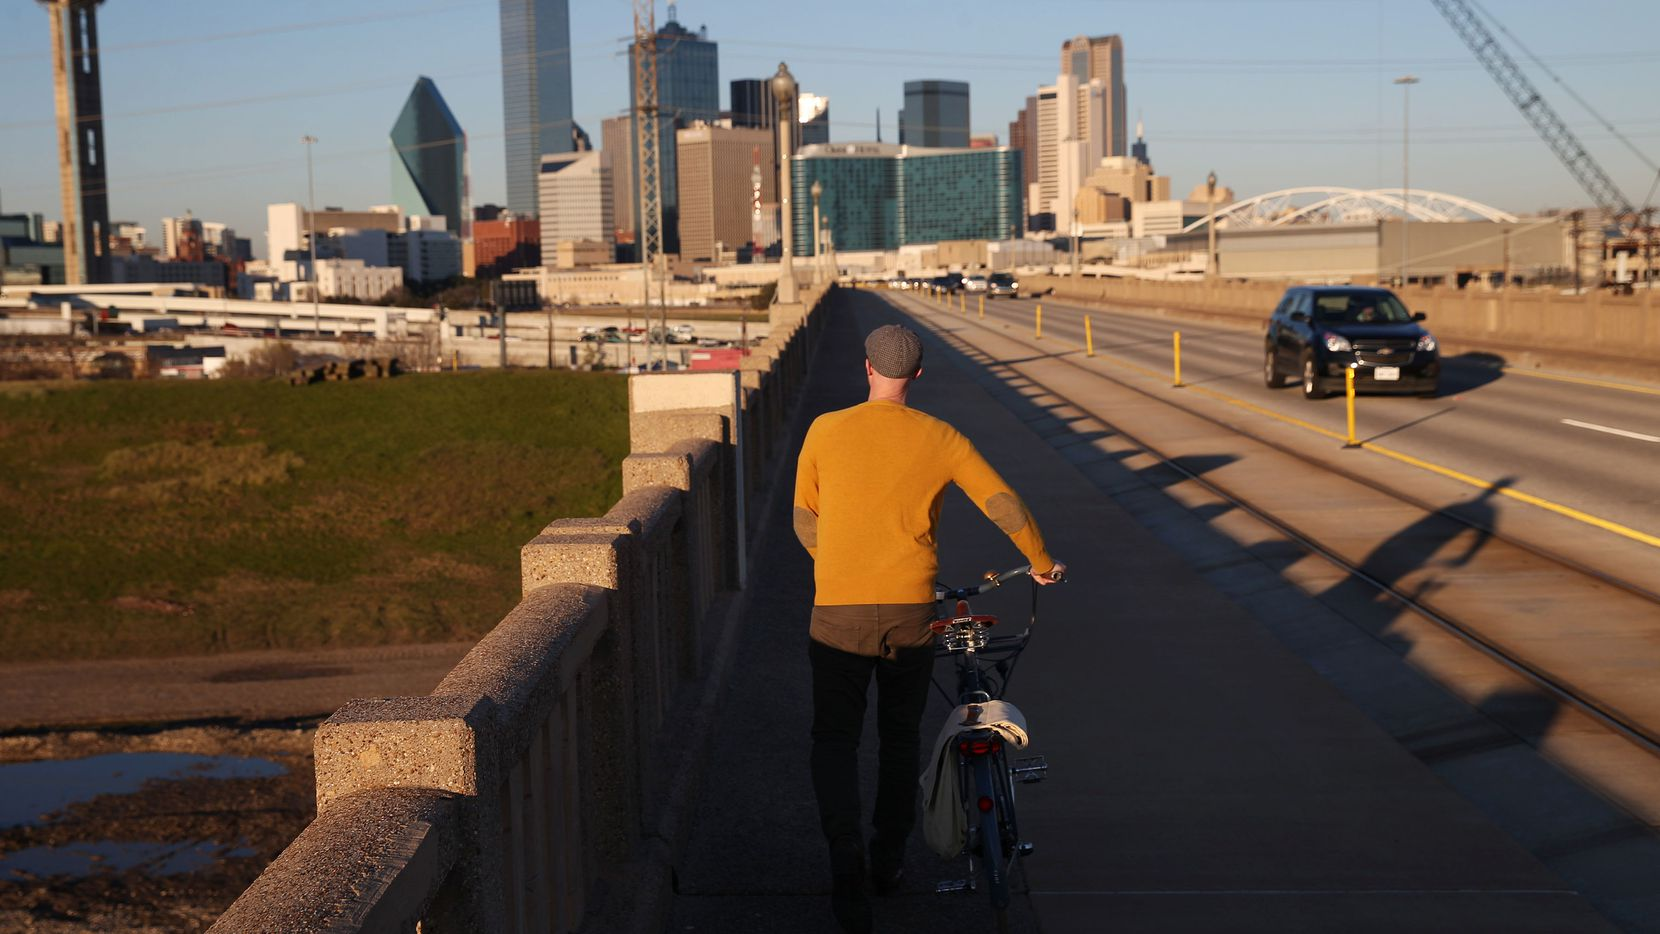 Jason Roberts, co-founder of Bike Friendly Oak Cliff, walks across the Houston Street bridge at rush hour before standing for a portrait for The Dallas Morning News in Dallas Tuesday January 12, 2016.